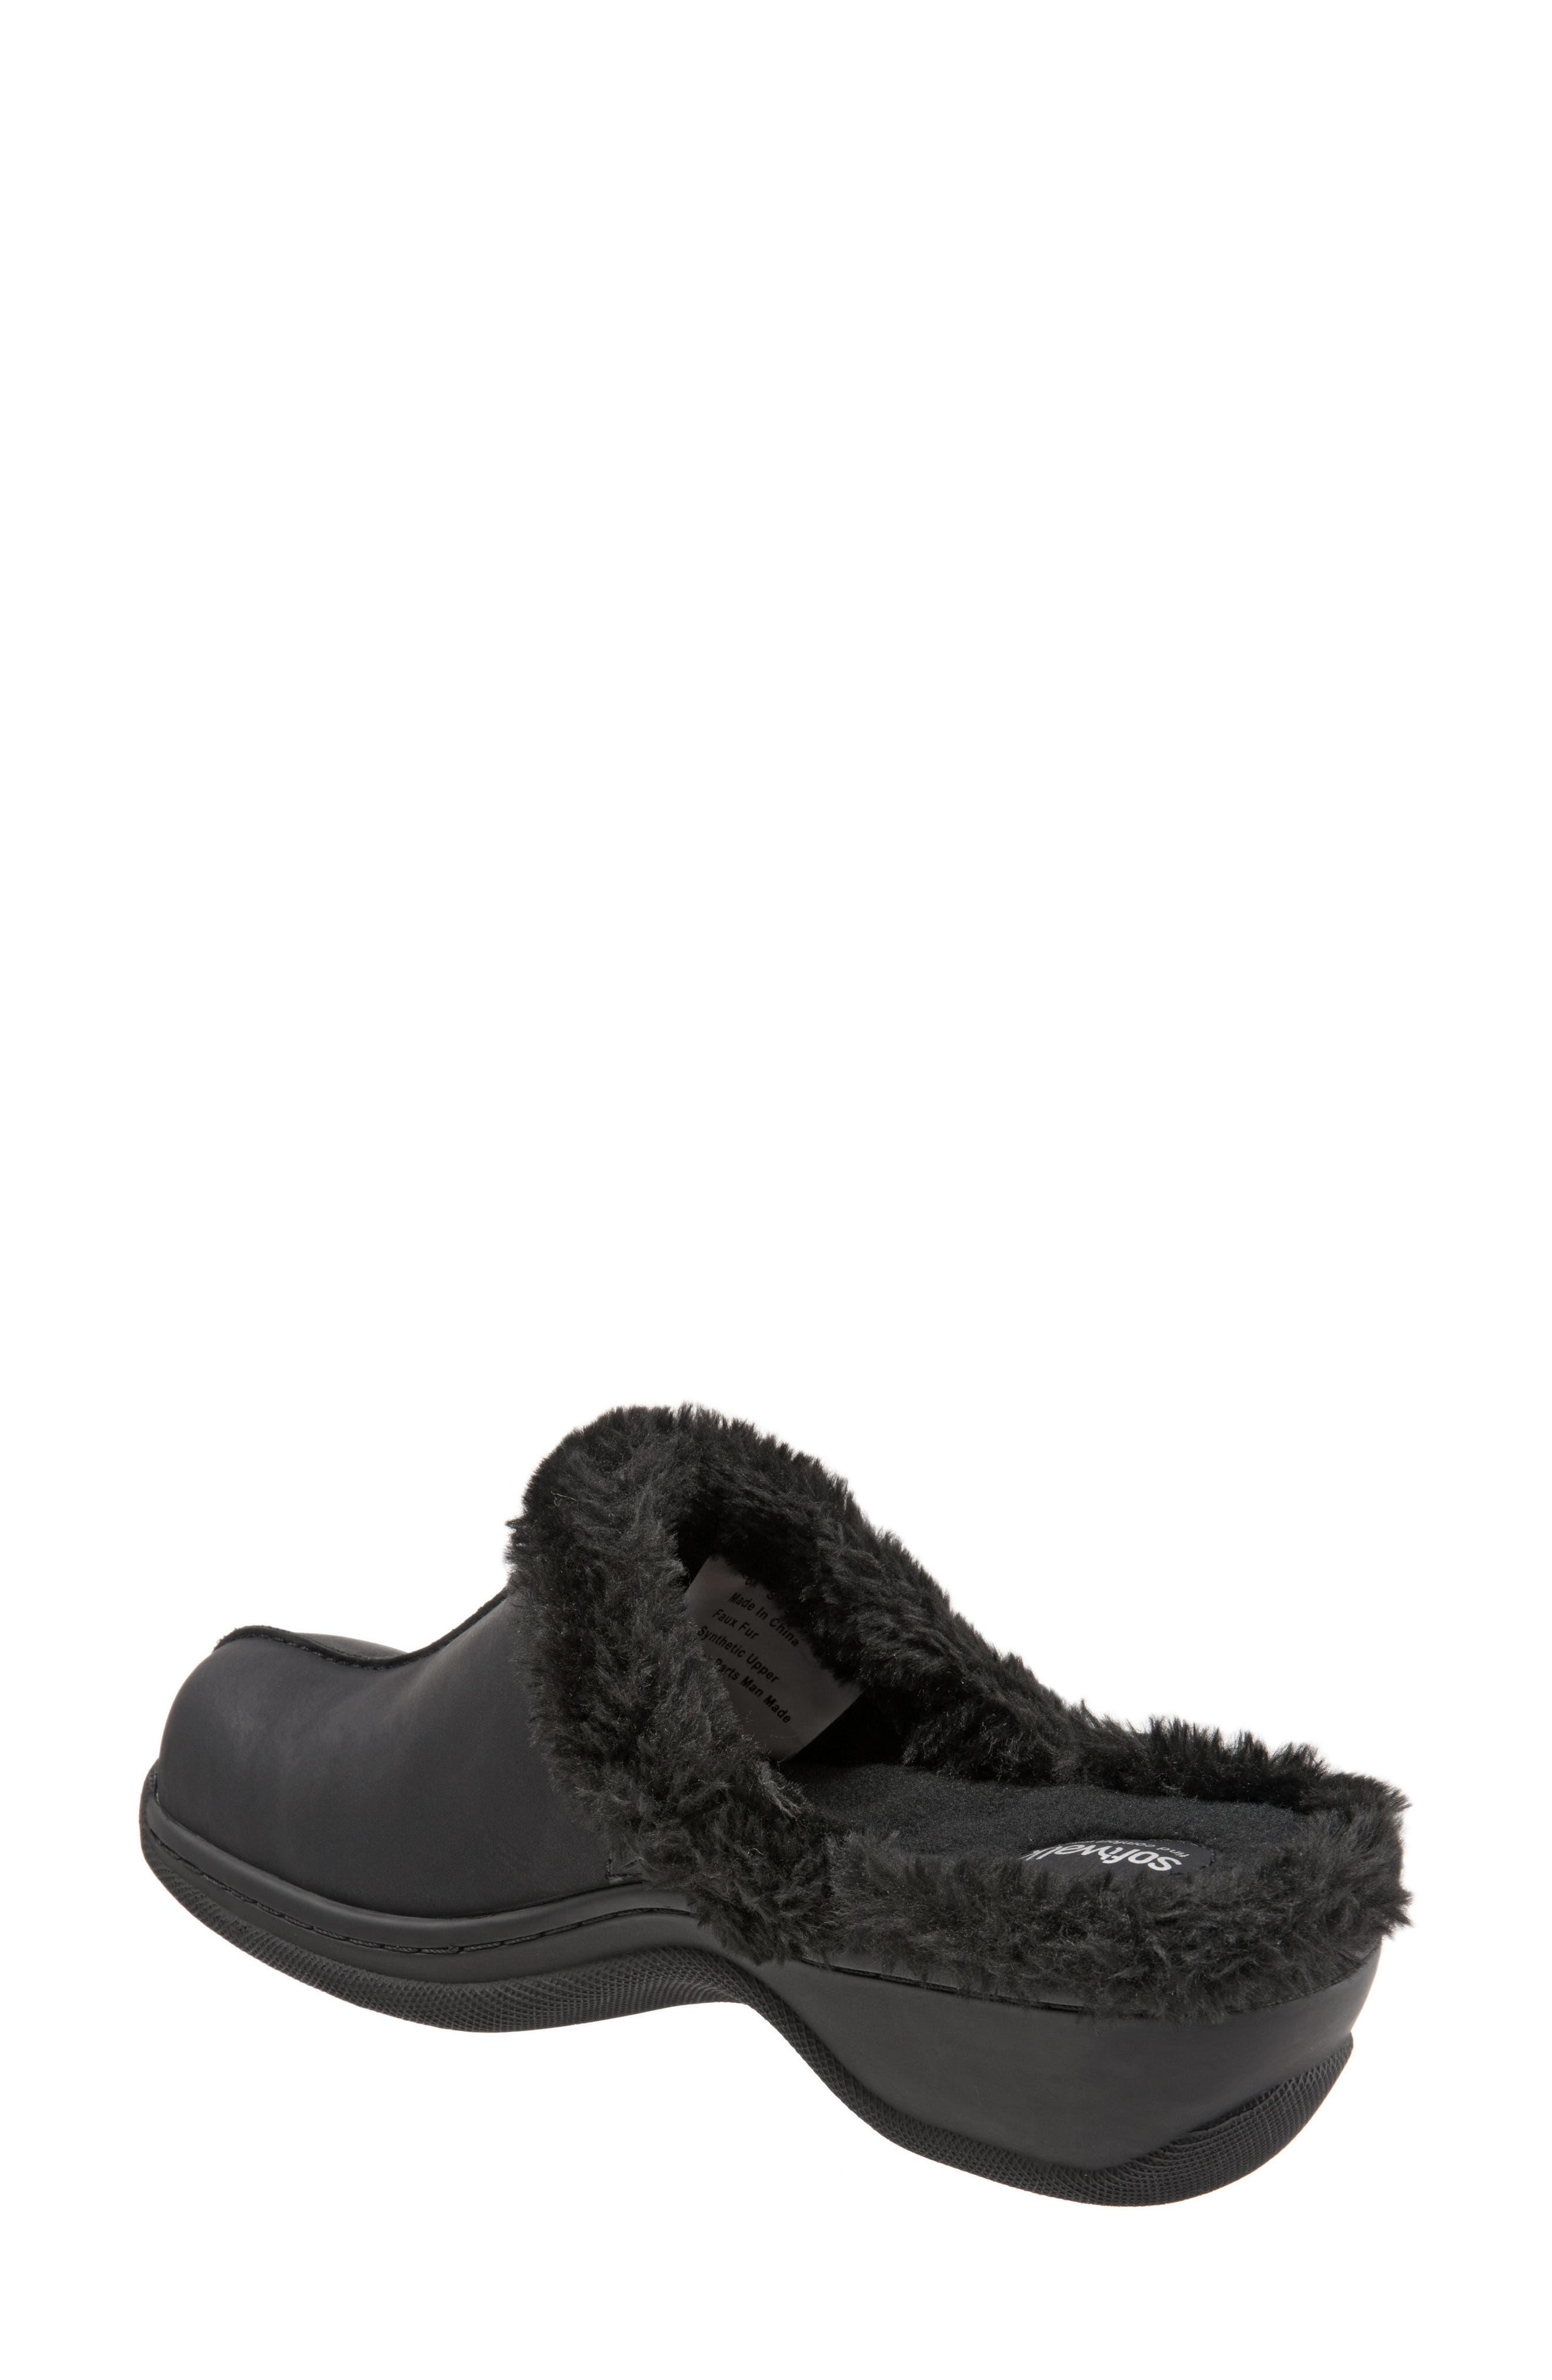 Abigail Clog with Faux Shearling Trim,                             Alternate thumbnail 2, color,                             004